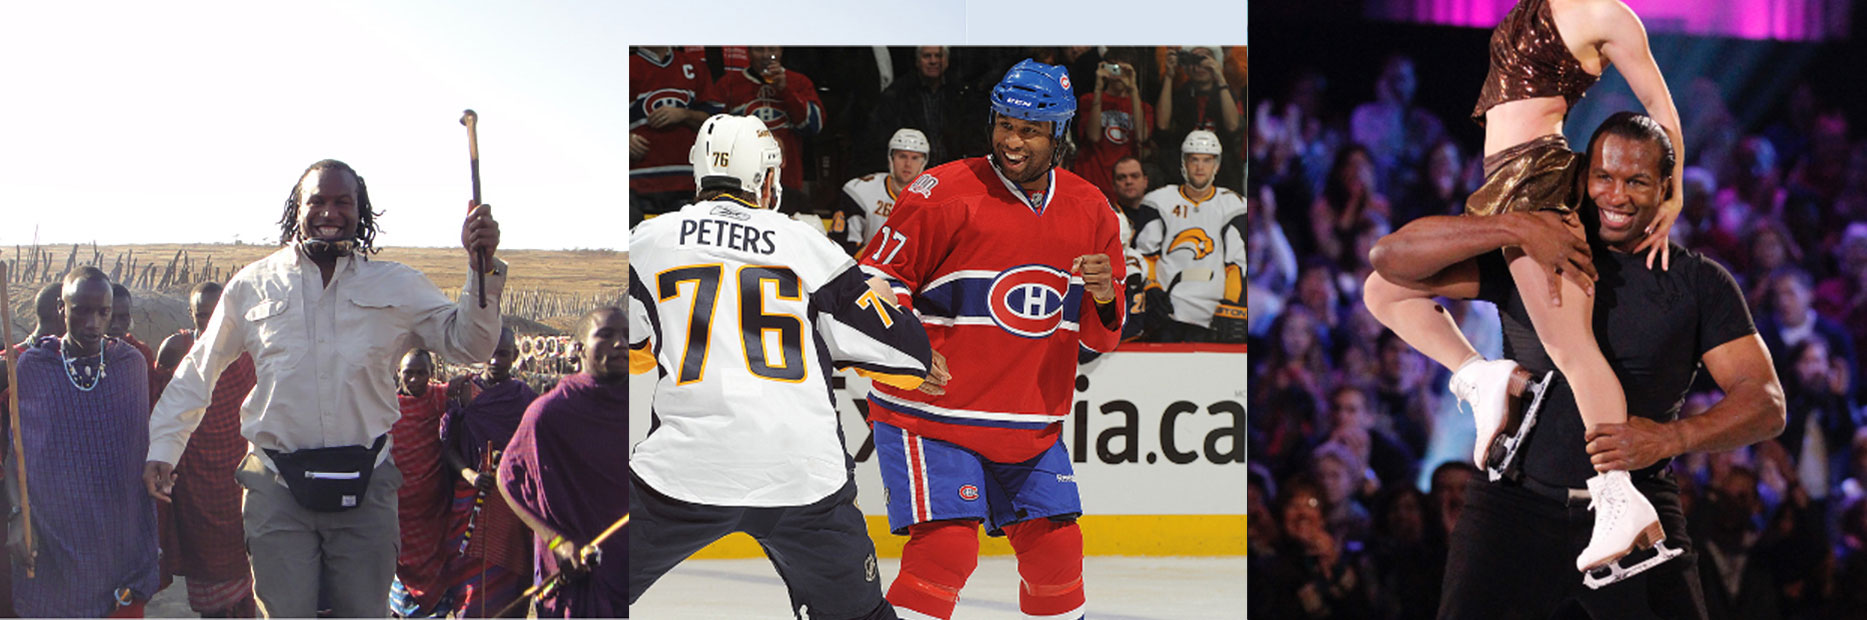 Georges Laraque photo montage